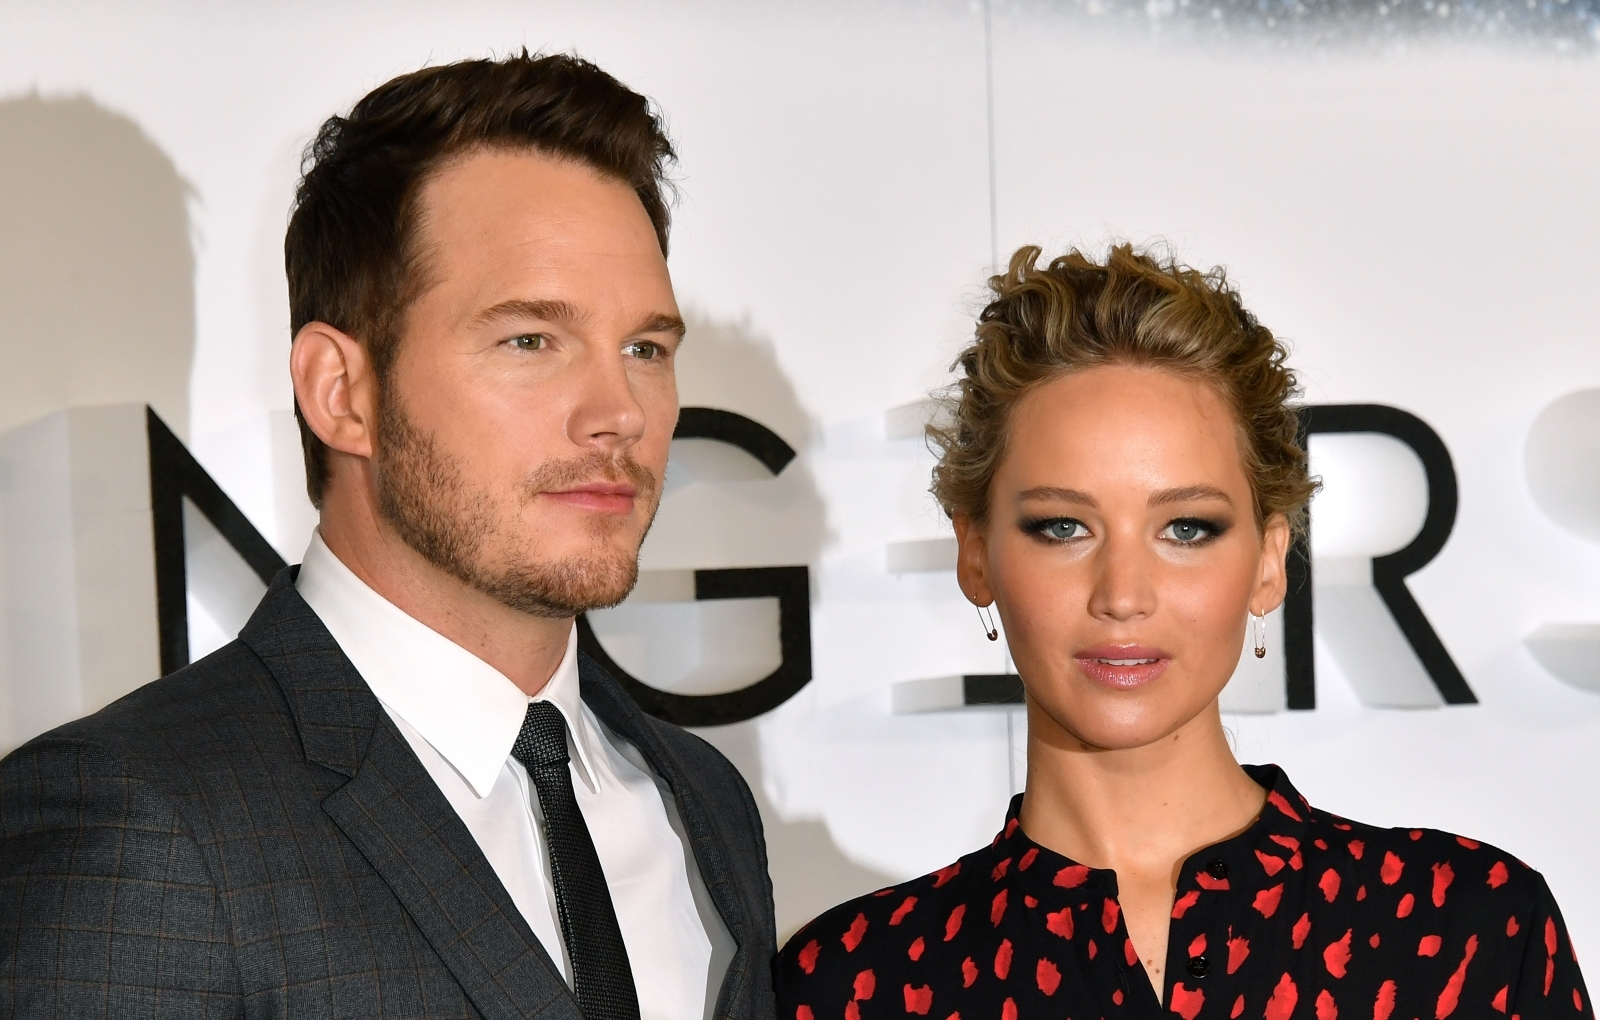 Chris Pratt and Anna Faris shocked friends with their split